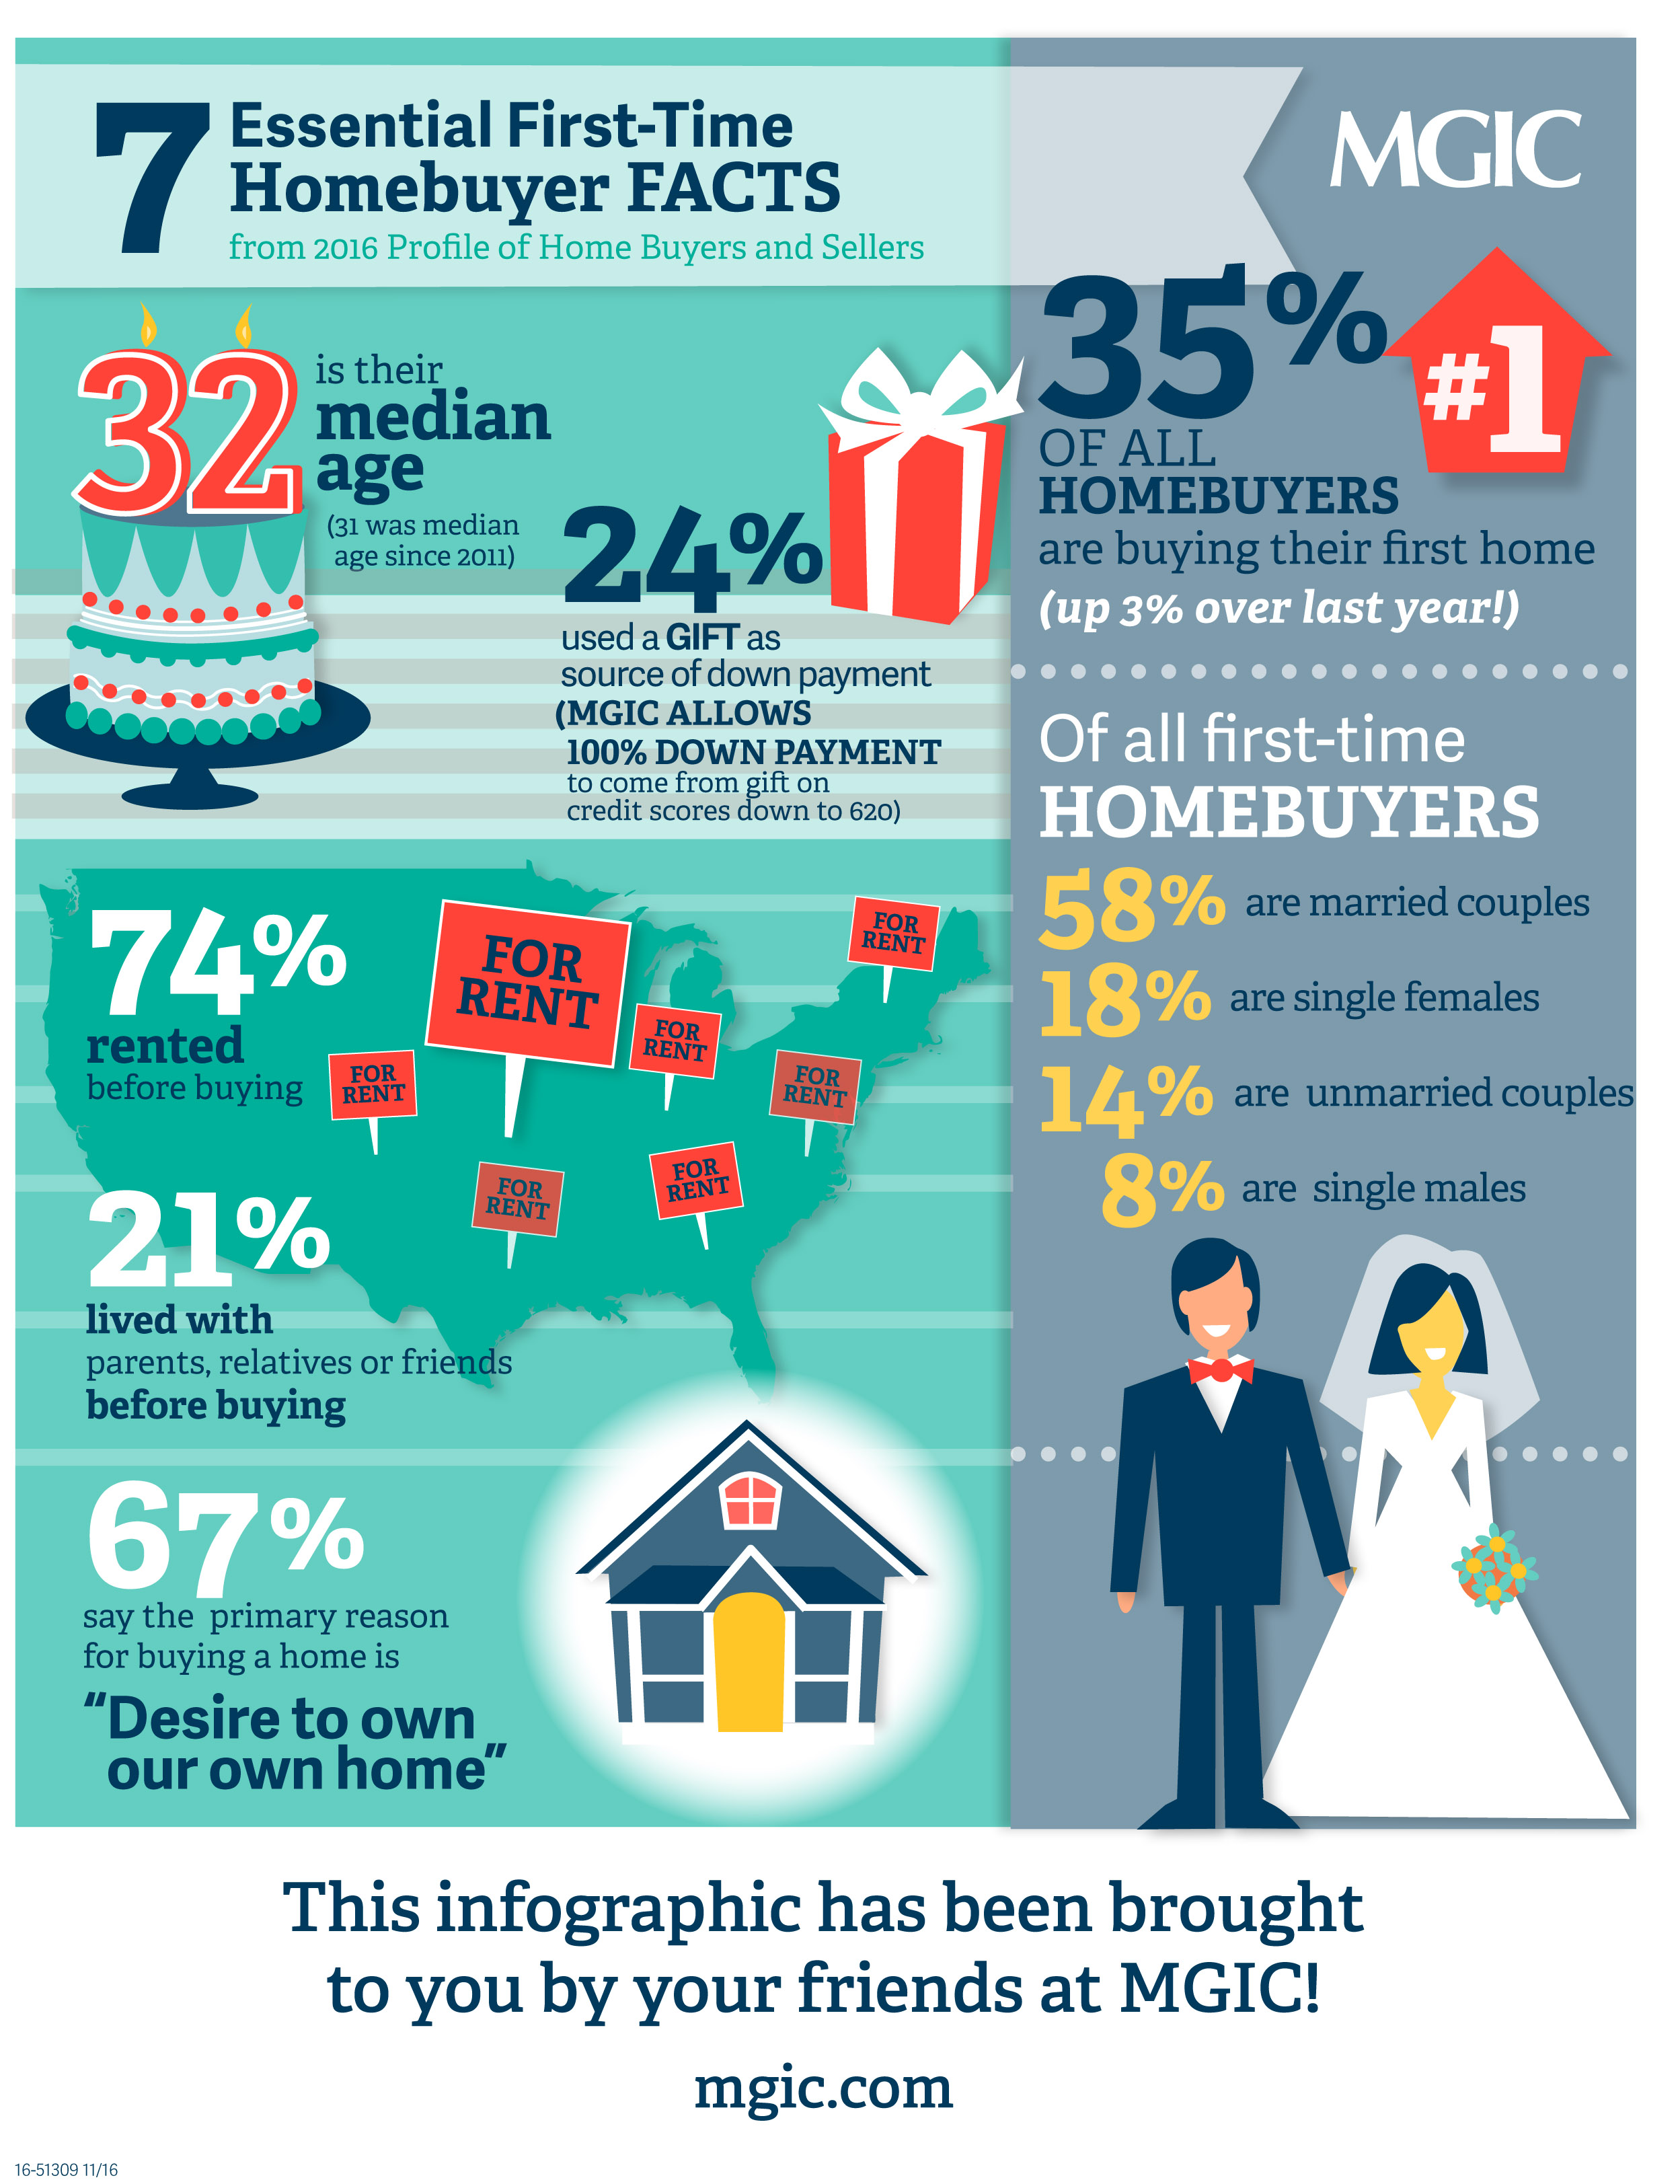 7 Essential First-Time Homebuyer Facts | Infographic - An Infographic from MGIC Connects